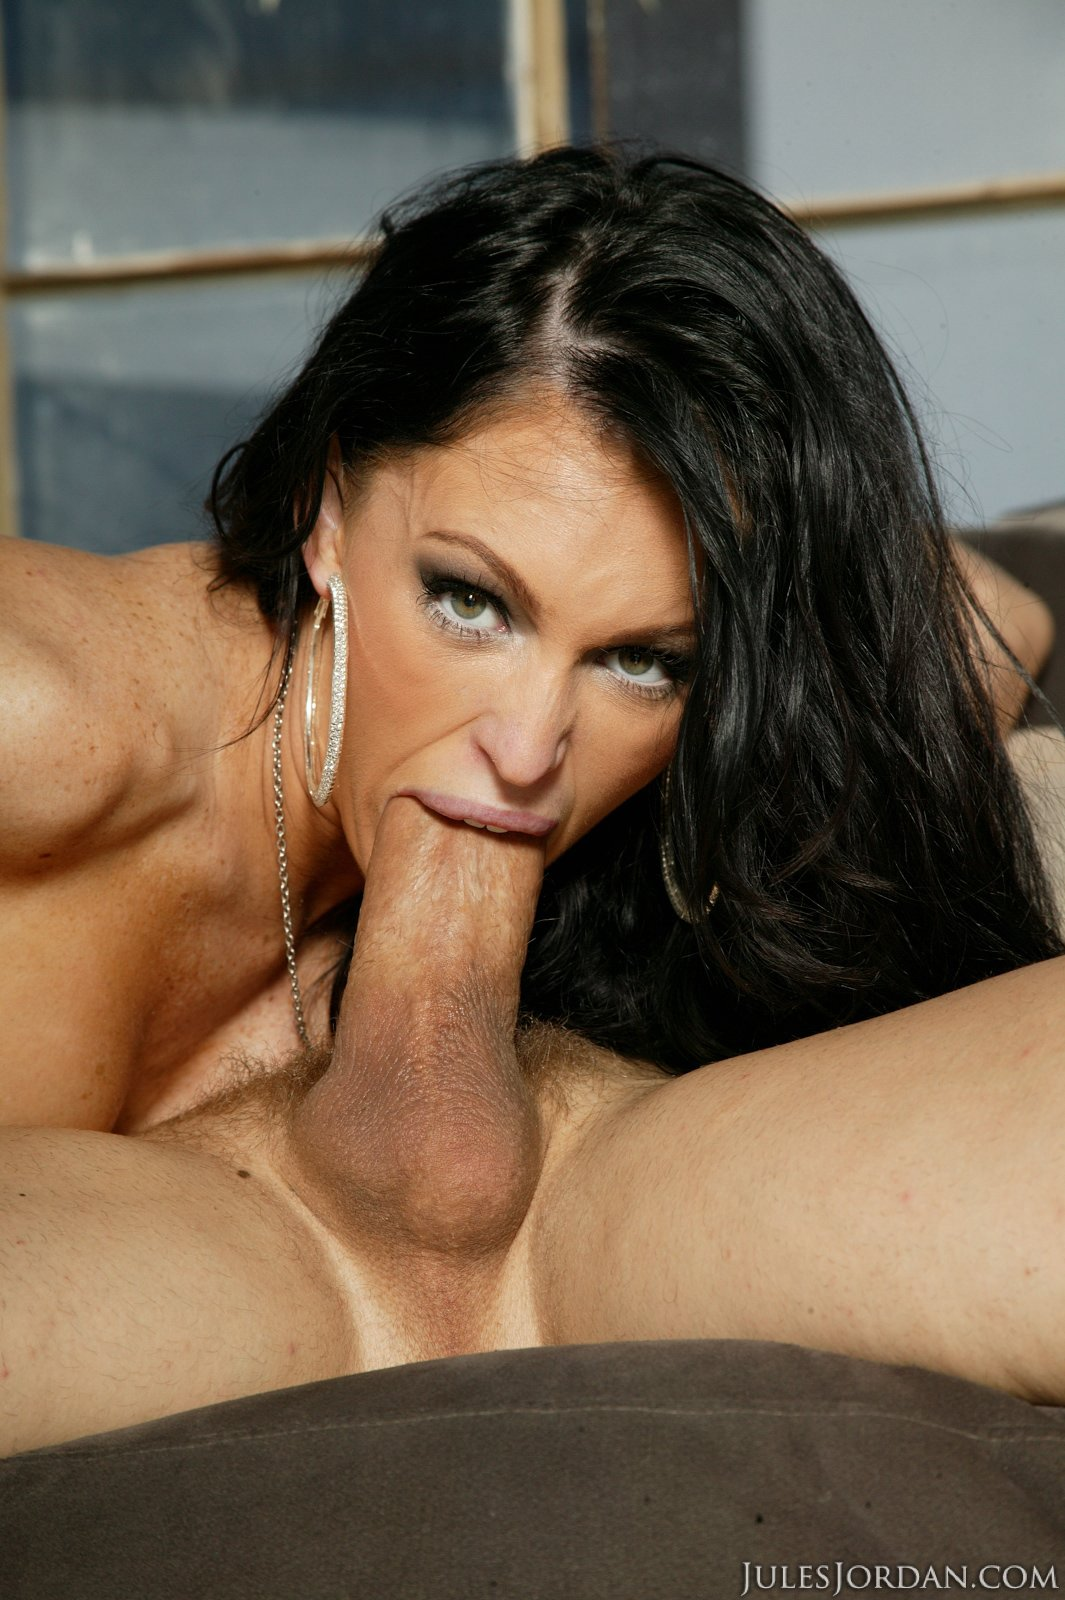 Hot jenna presley blowjob already discussed